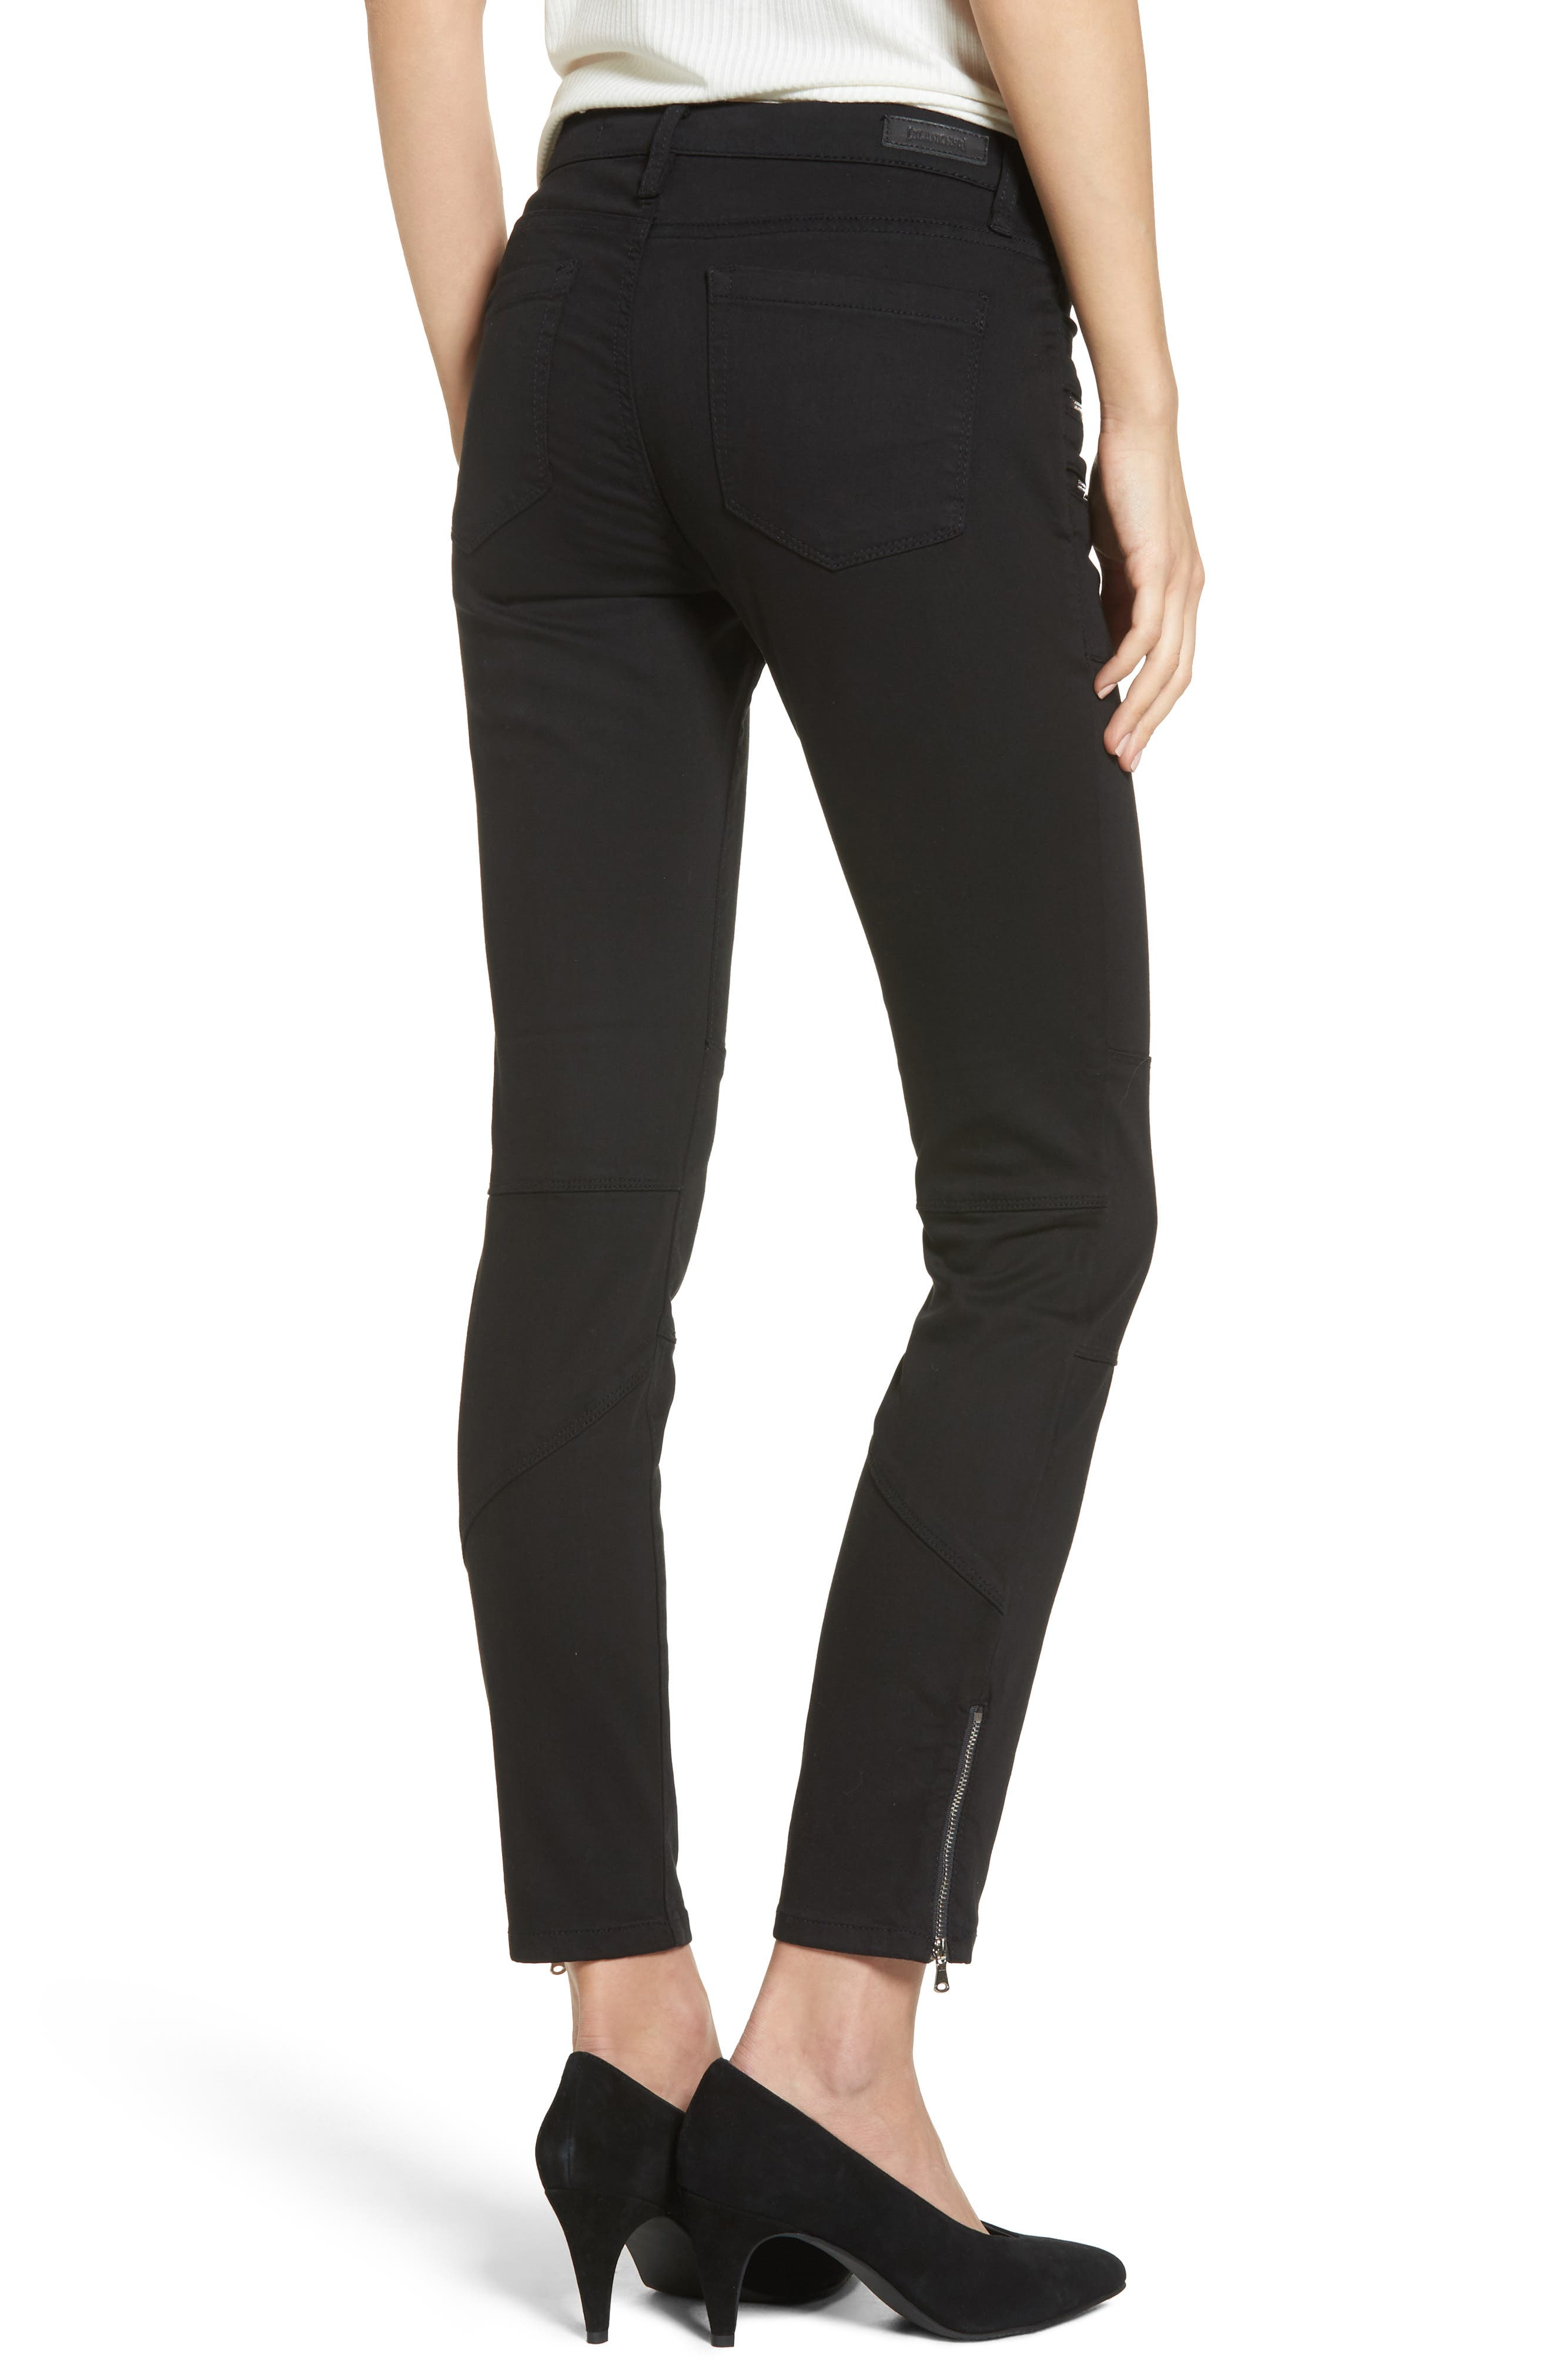 Private Party Skinny Jeans,                             Alternate thumbnail 2, color,                             Black